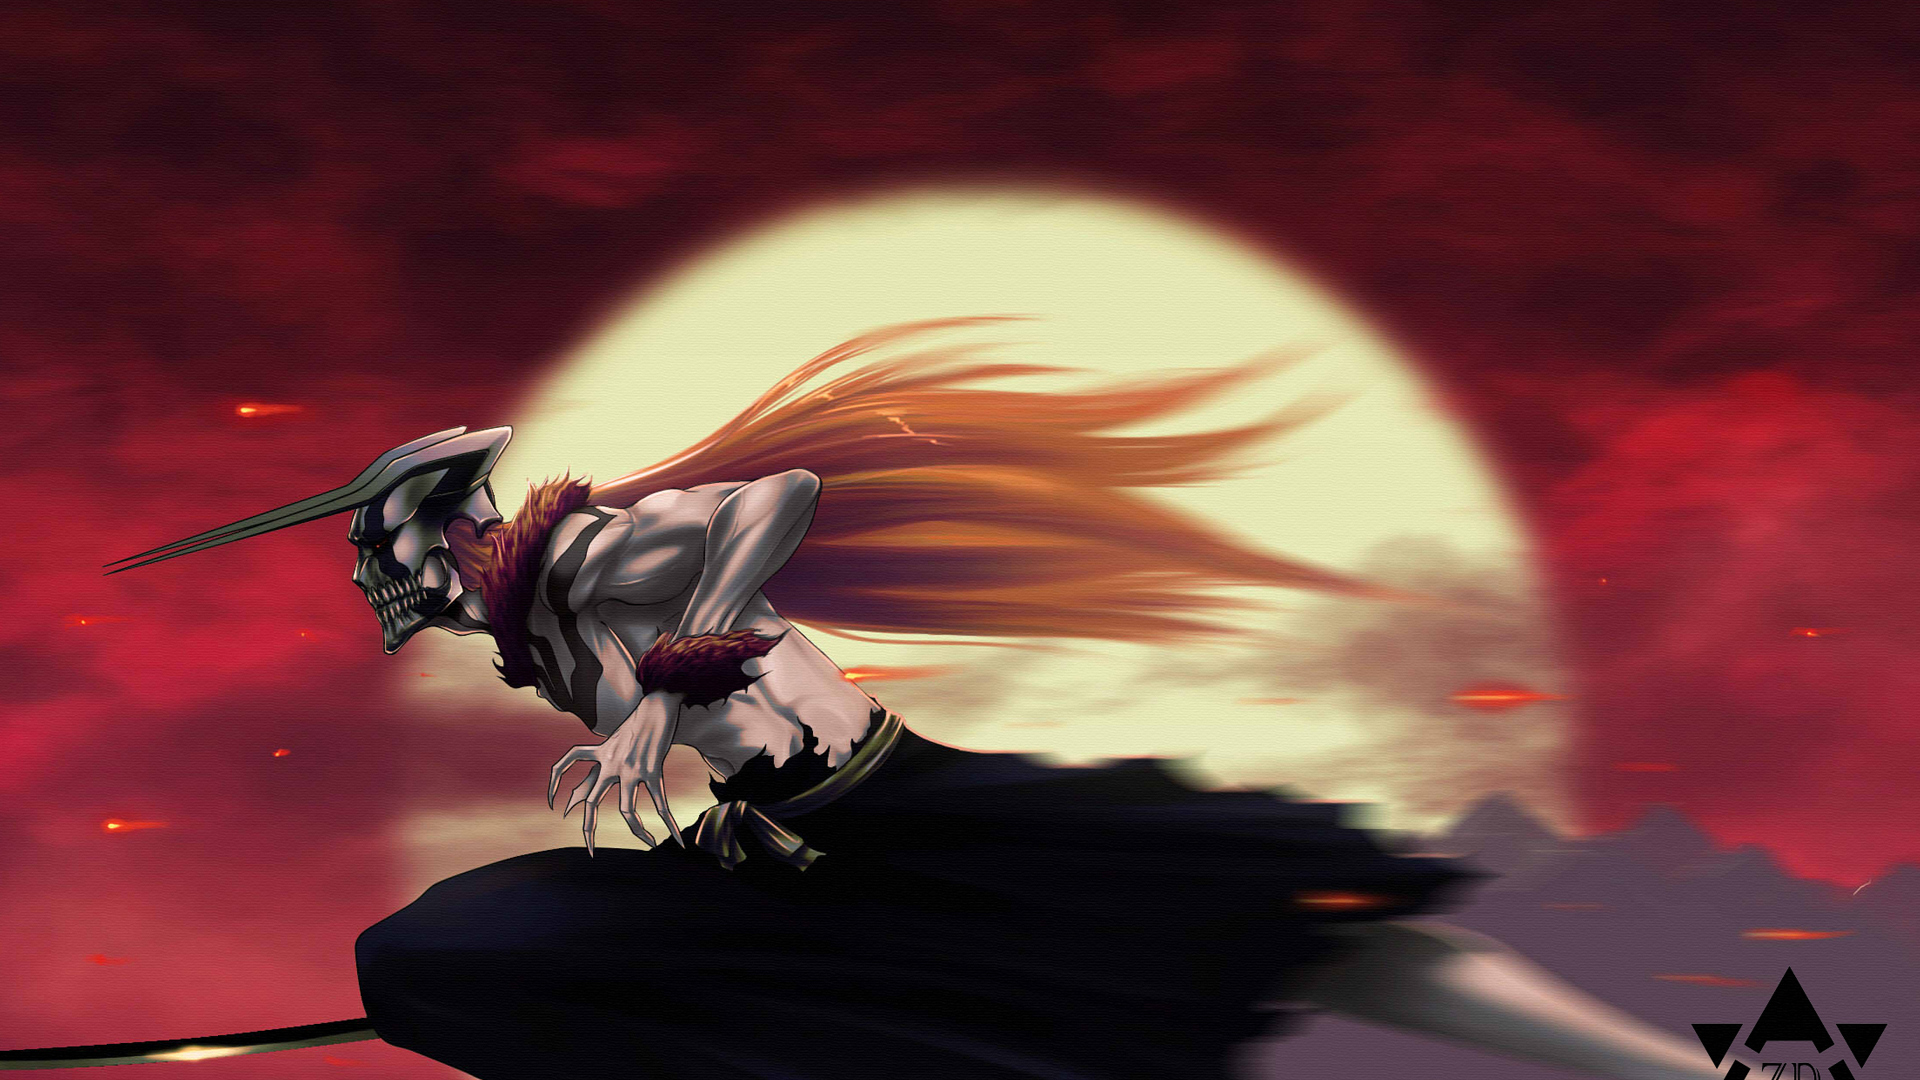 bleach wallpaper 1920 x 1080 - photo #43